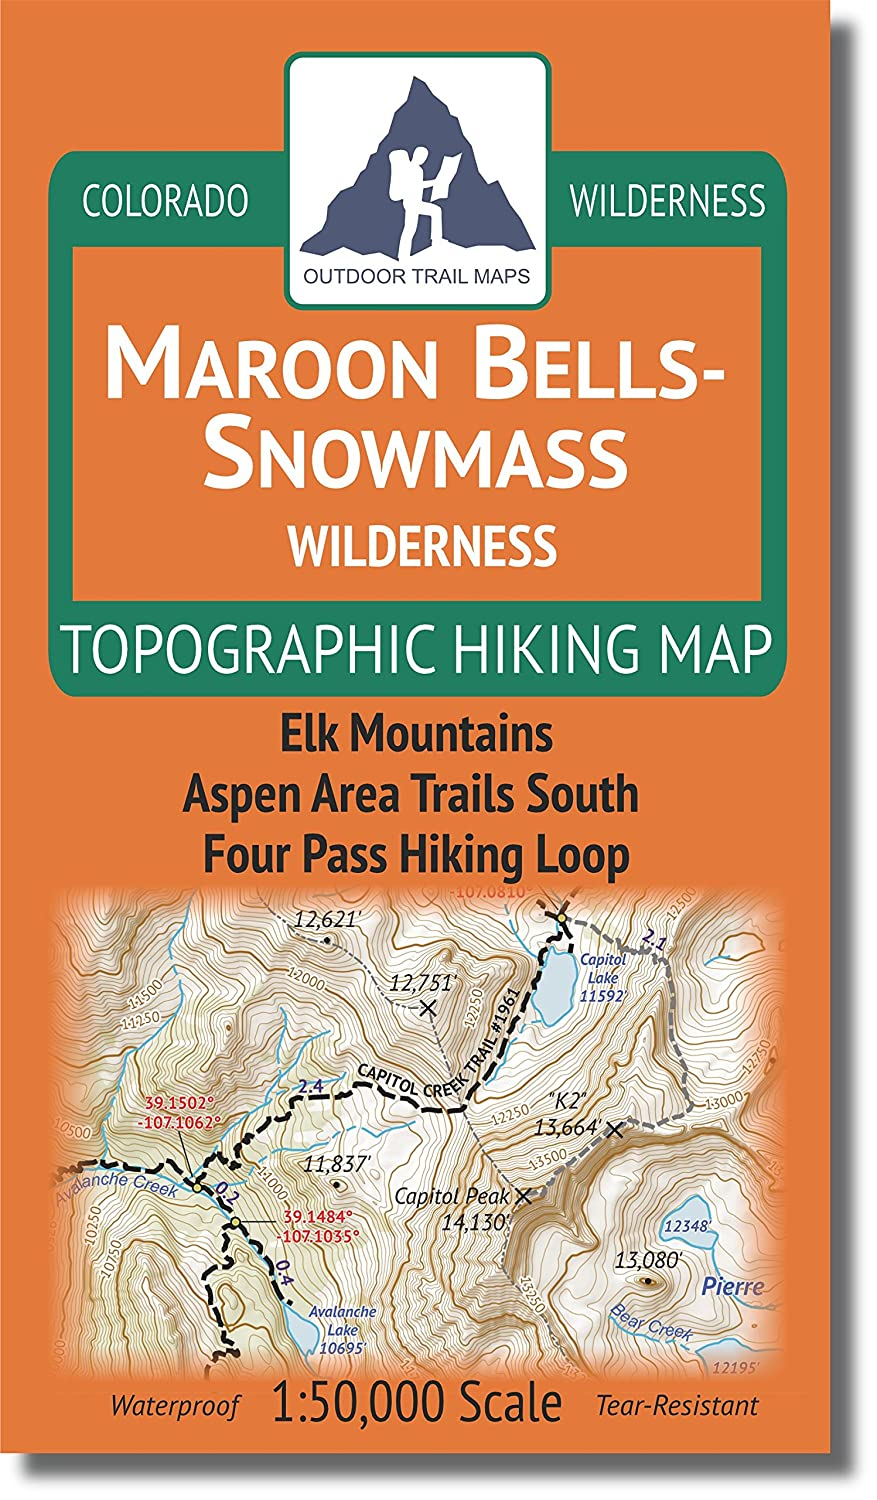 Maroon Bells-Snowmass Wilderness - Colorado Topographic Hiking Map (2018) Outdoor Trail Maps LLC